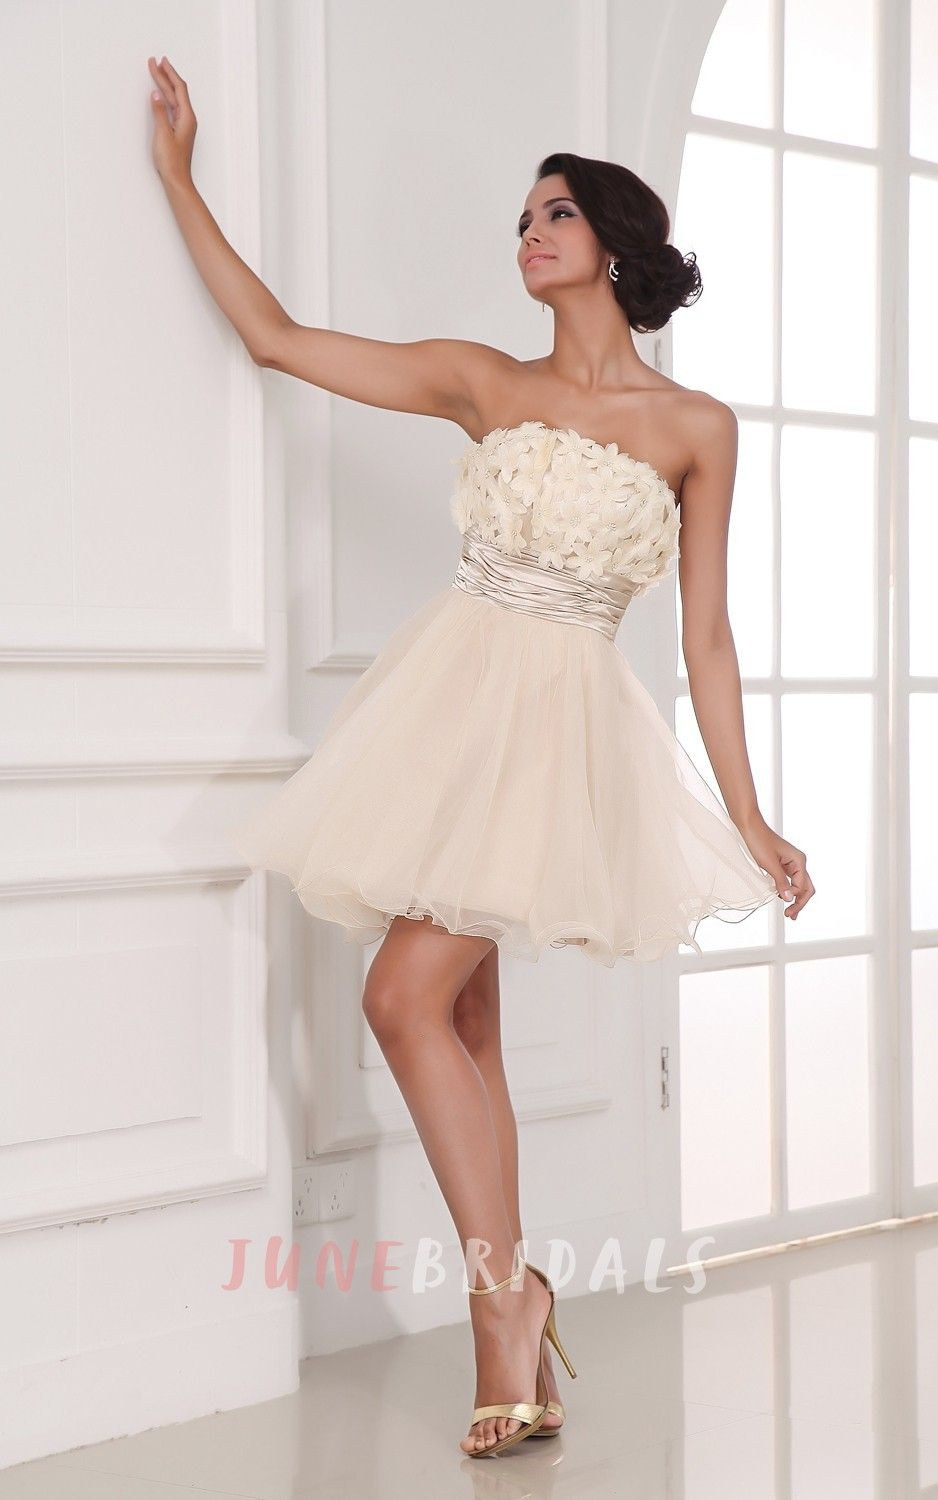 Chic champagne aline style dress with flowers unique wedding